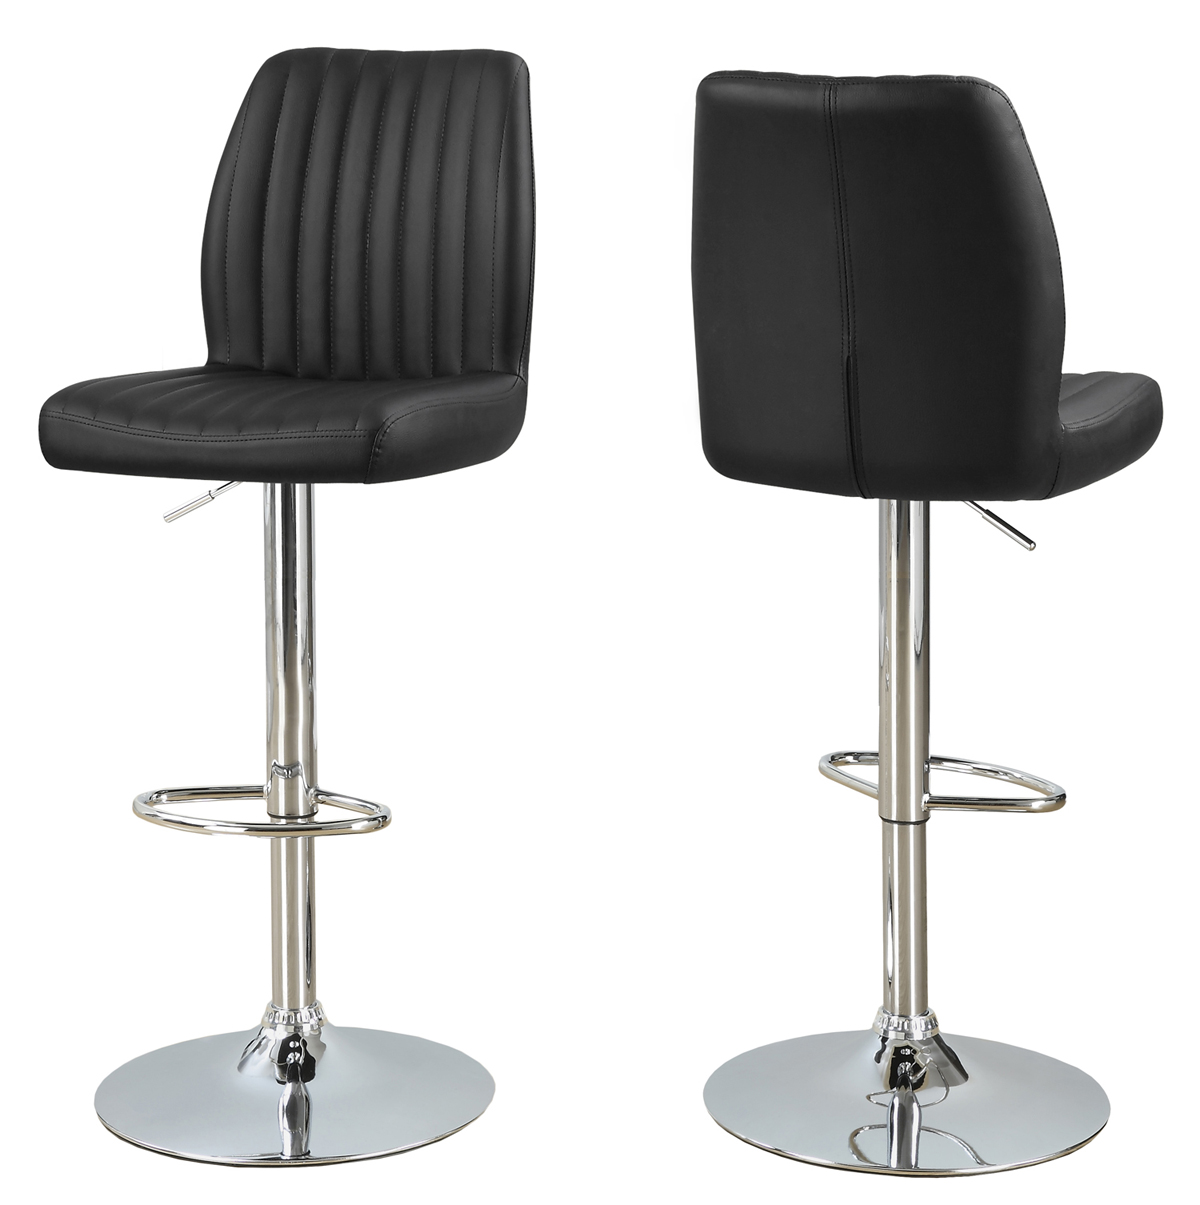 2-Pieces Hydraulic Lift Metal Barstool, Chrome Base and Black Upholstery